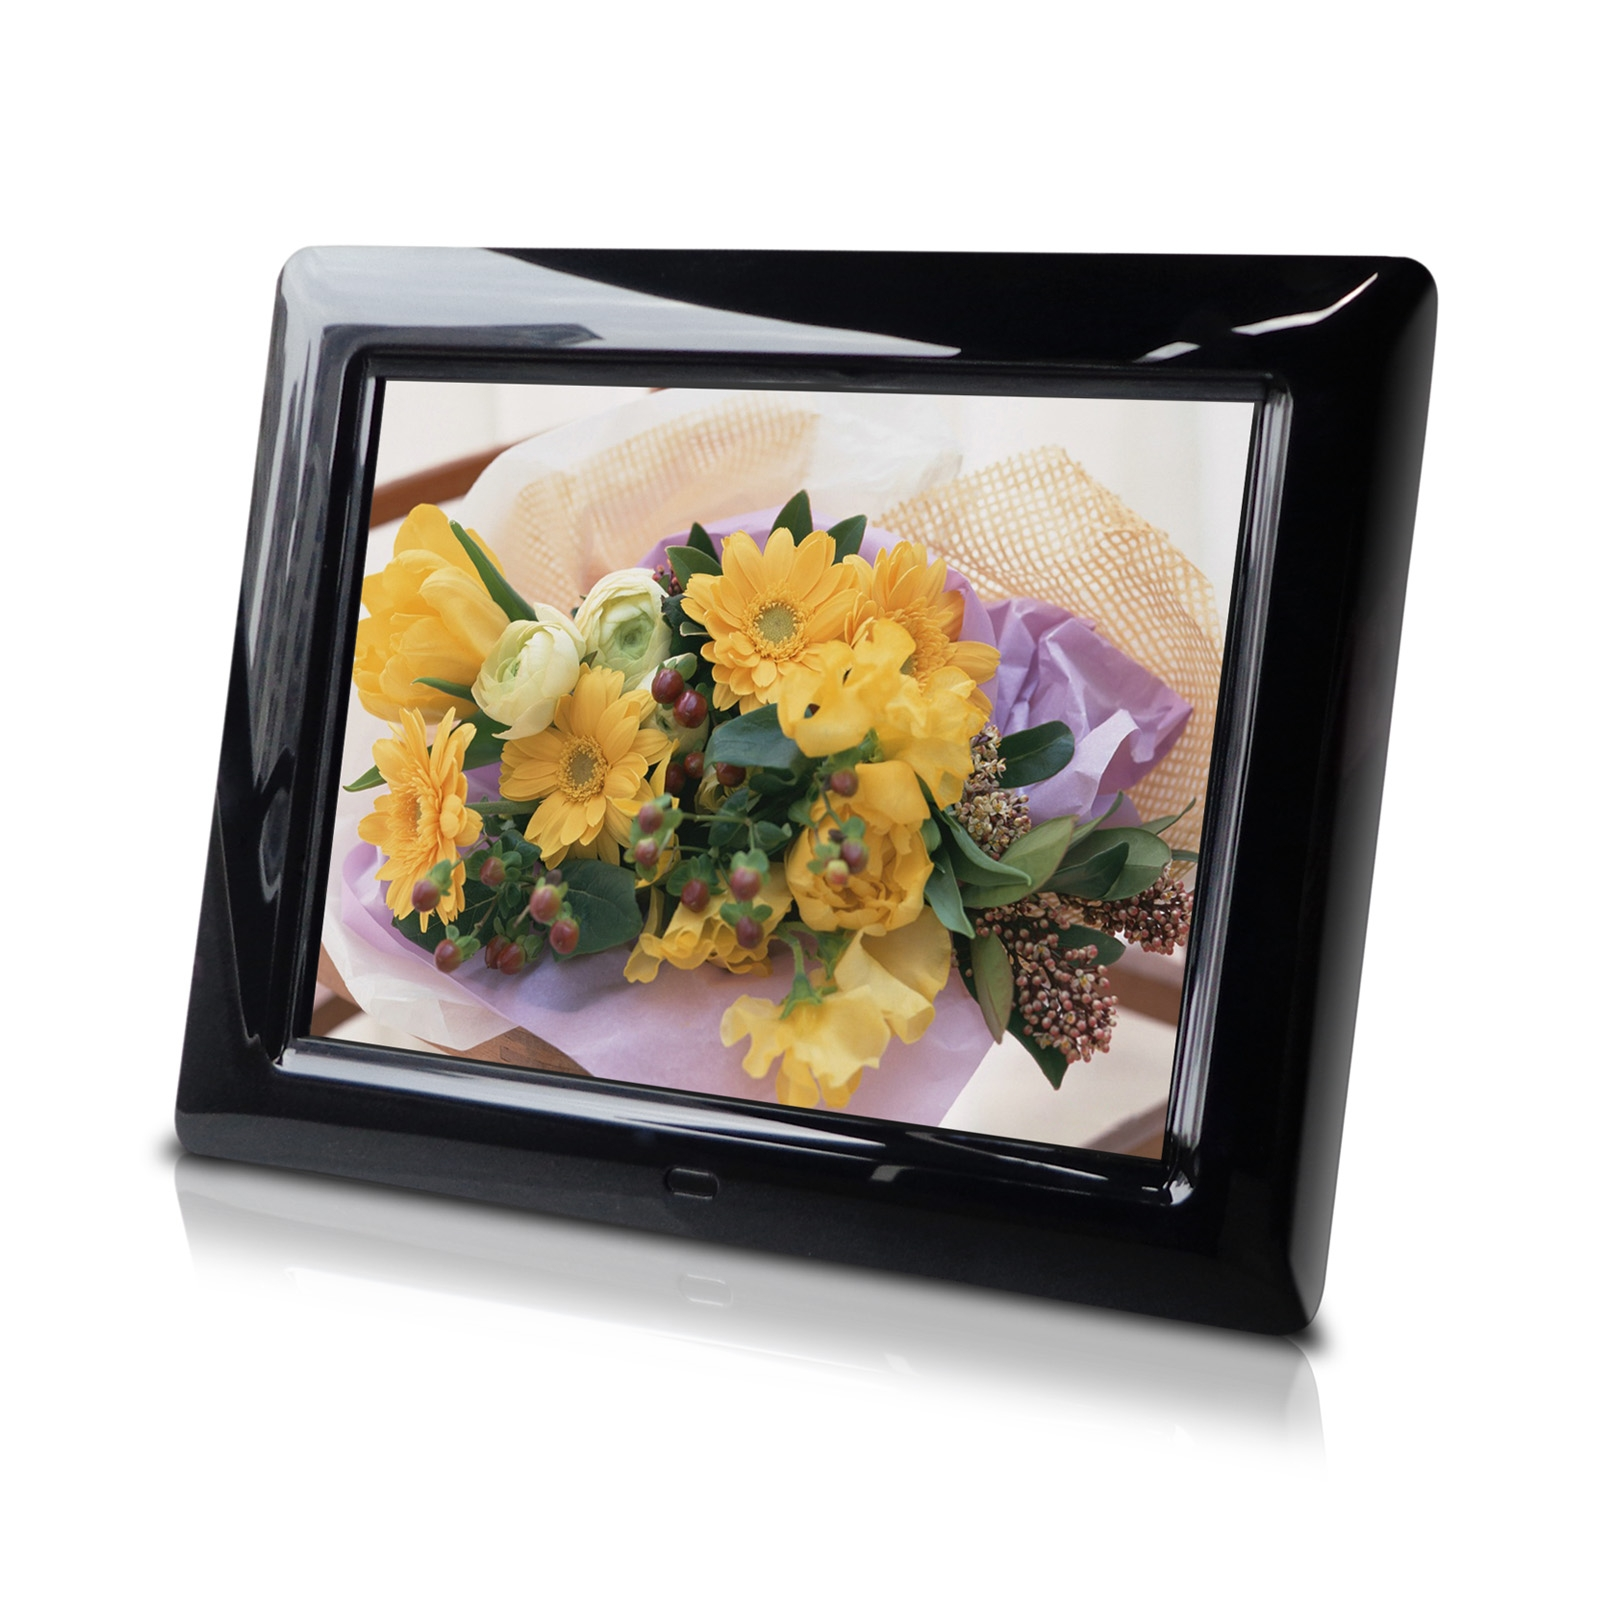 Kmart Digital Photo Frame Sungale Pf803 8 Quot Pure Digital Photo Frame